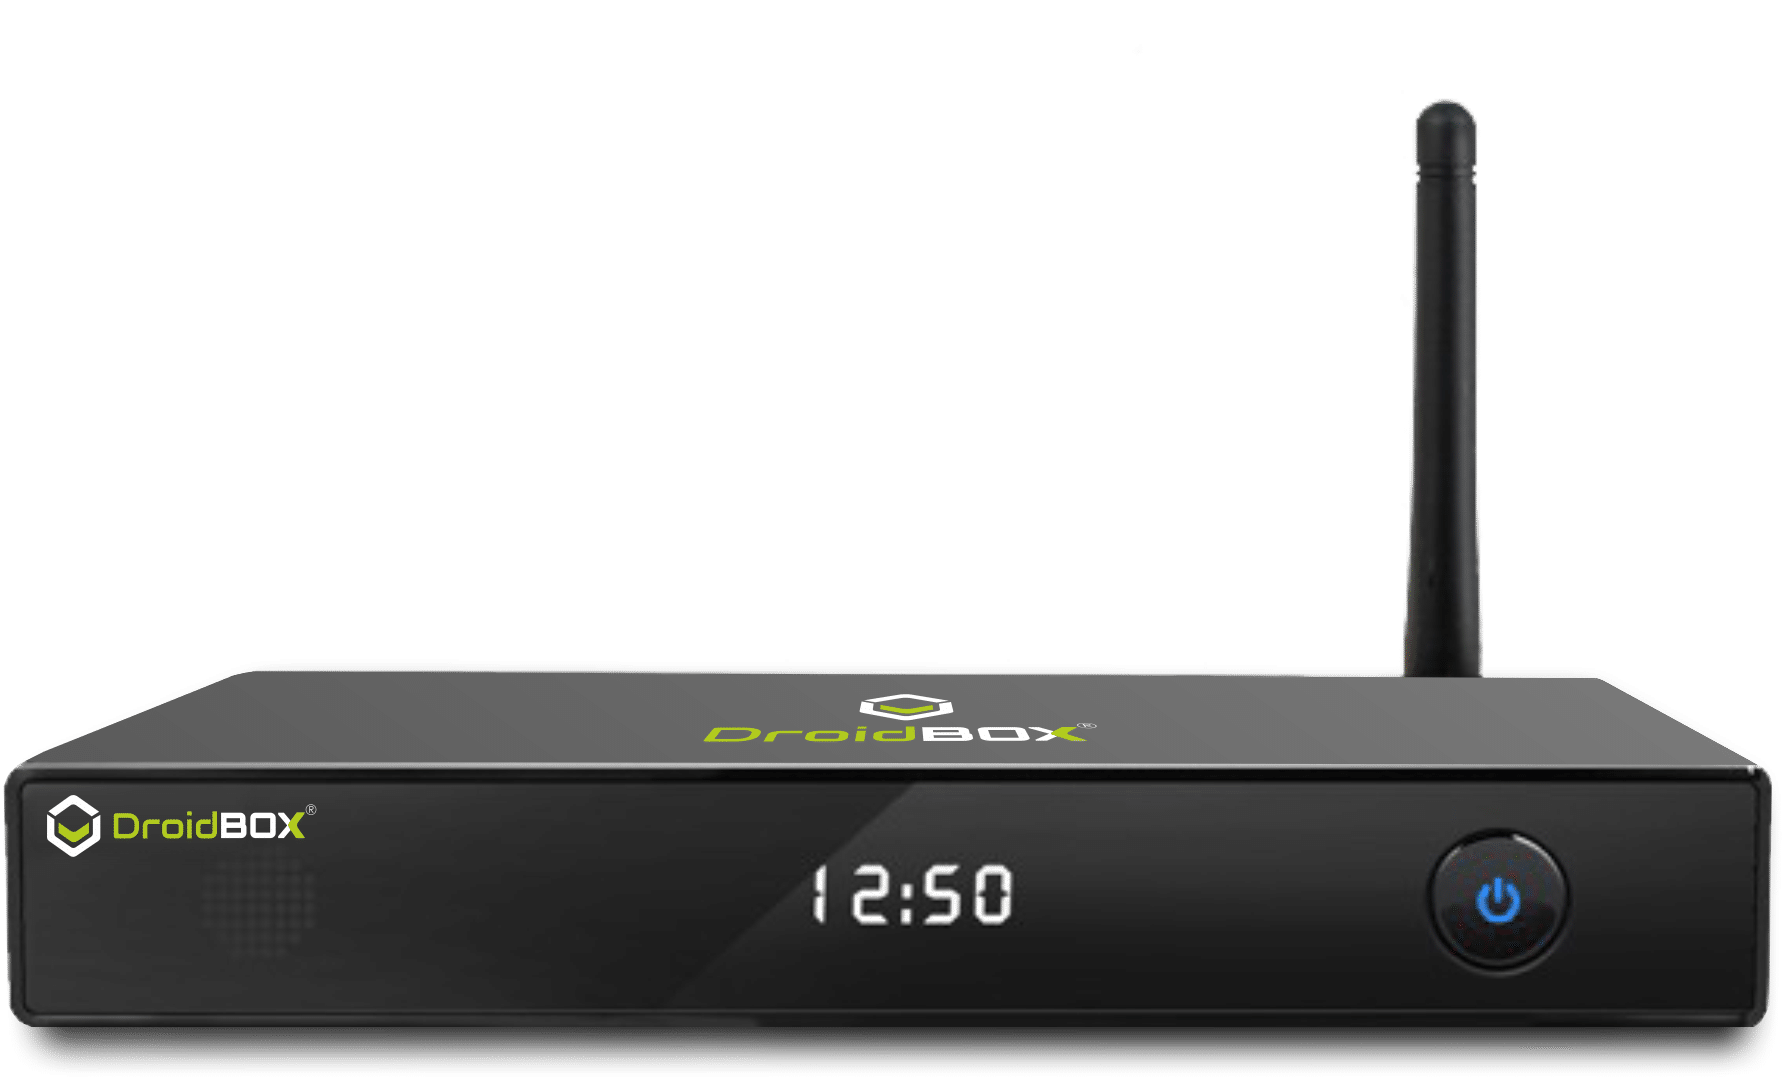 DroidBOX M5 Android Set Top Box front view